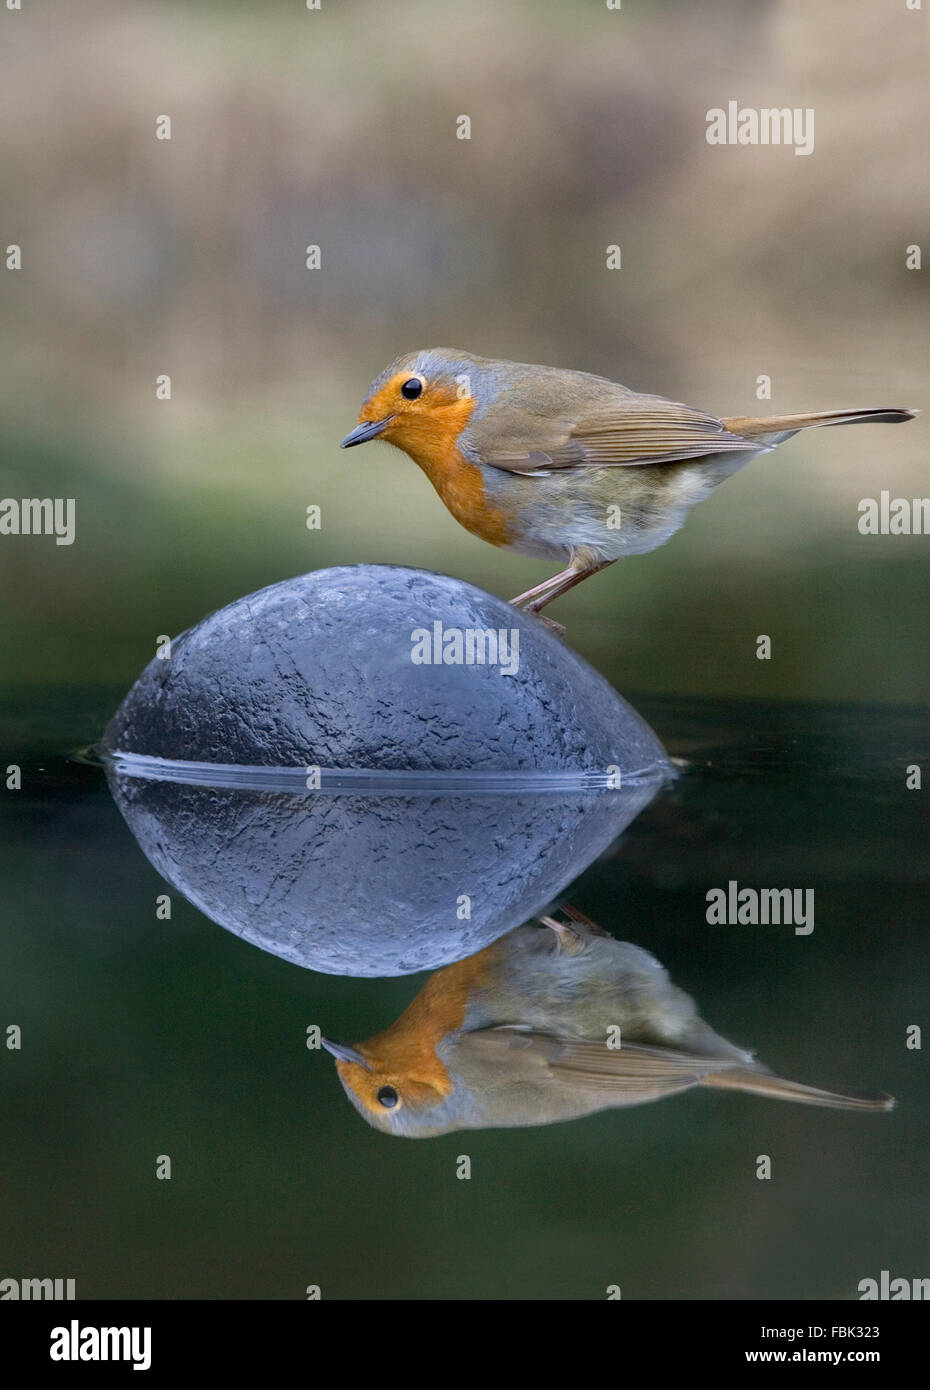 European Robin (Erithacus rubecula) perched on a stone in the middle of a garden pond, with refection, Bentley. Stock Photo